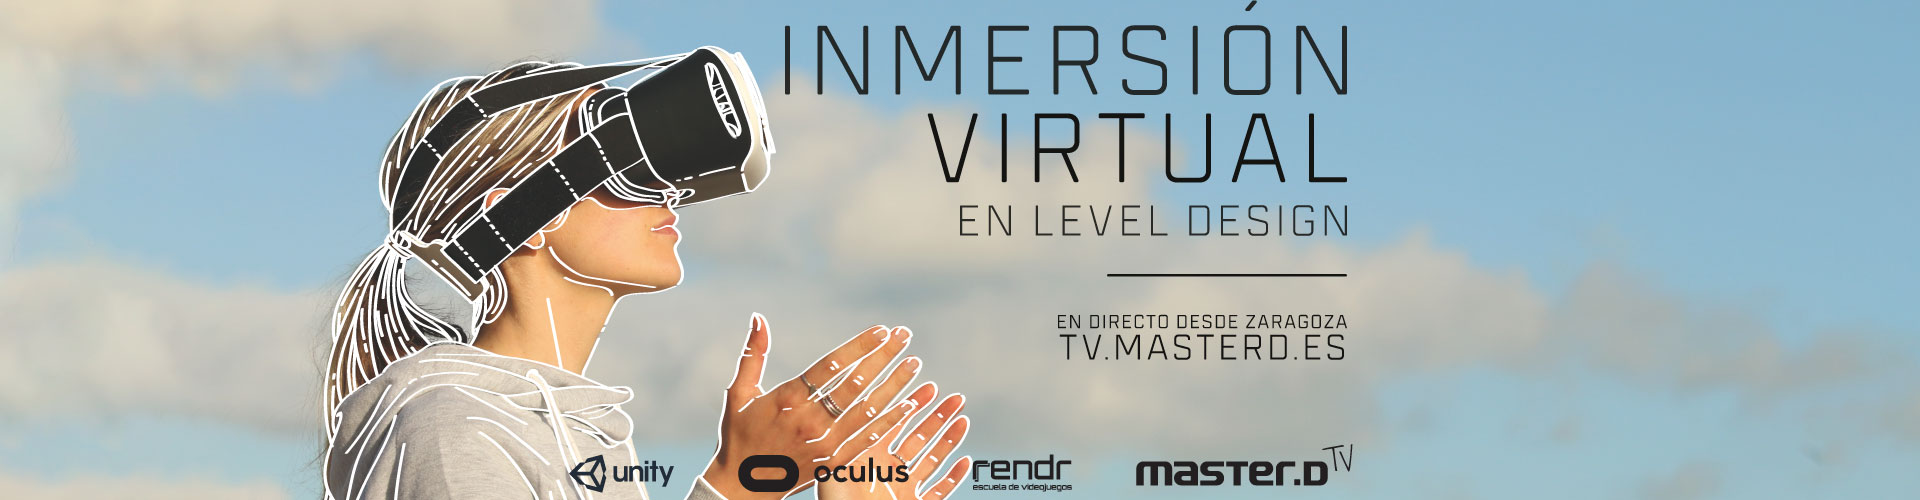 Inmersión Virtual en Level Design